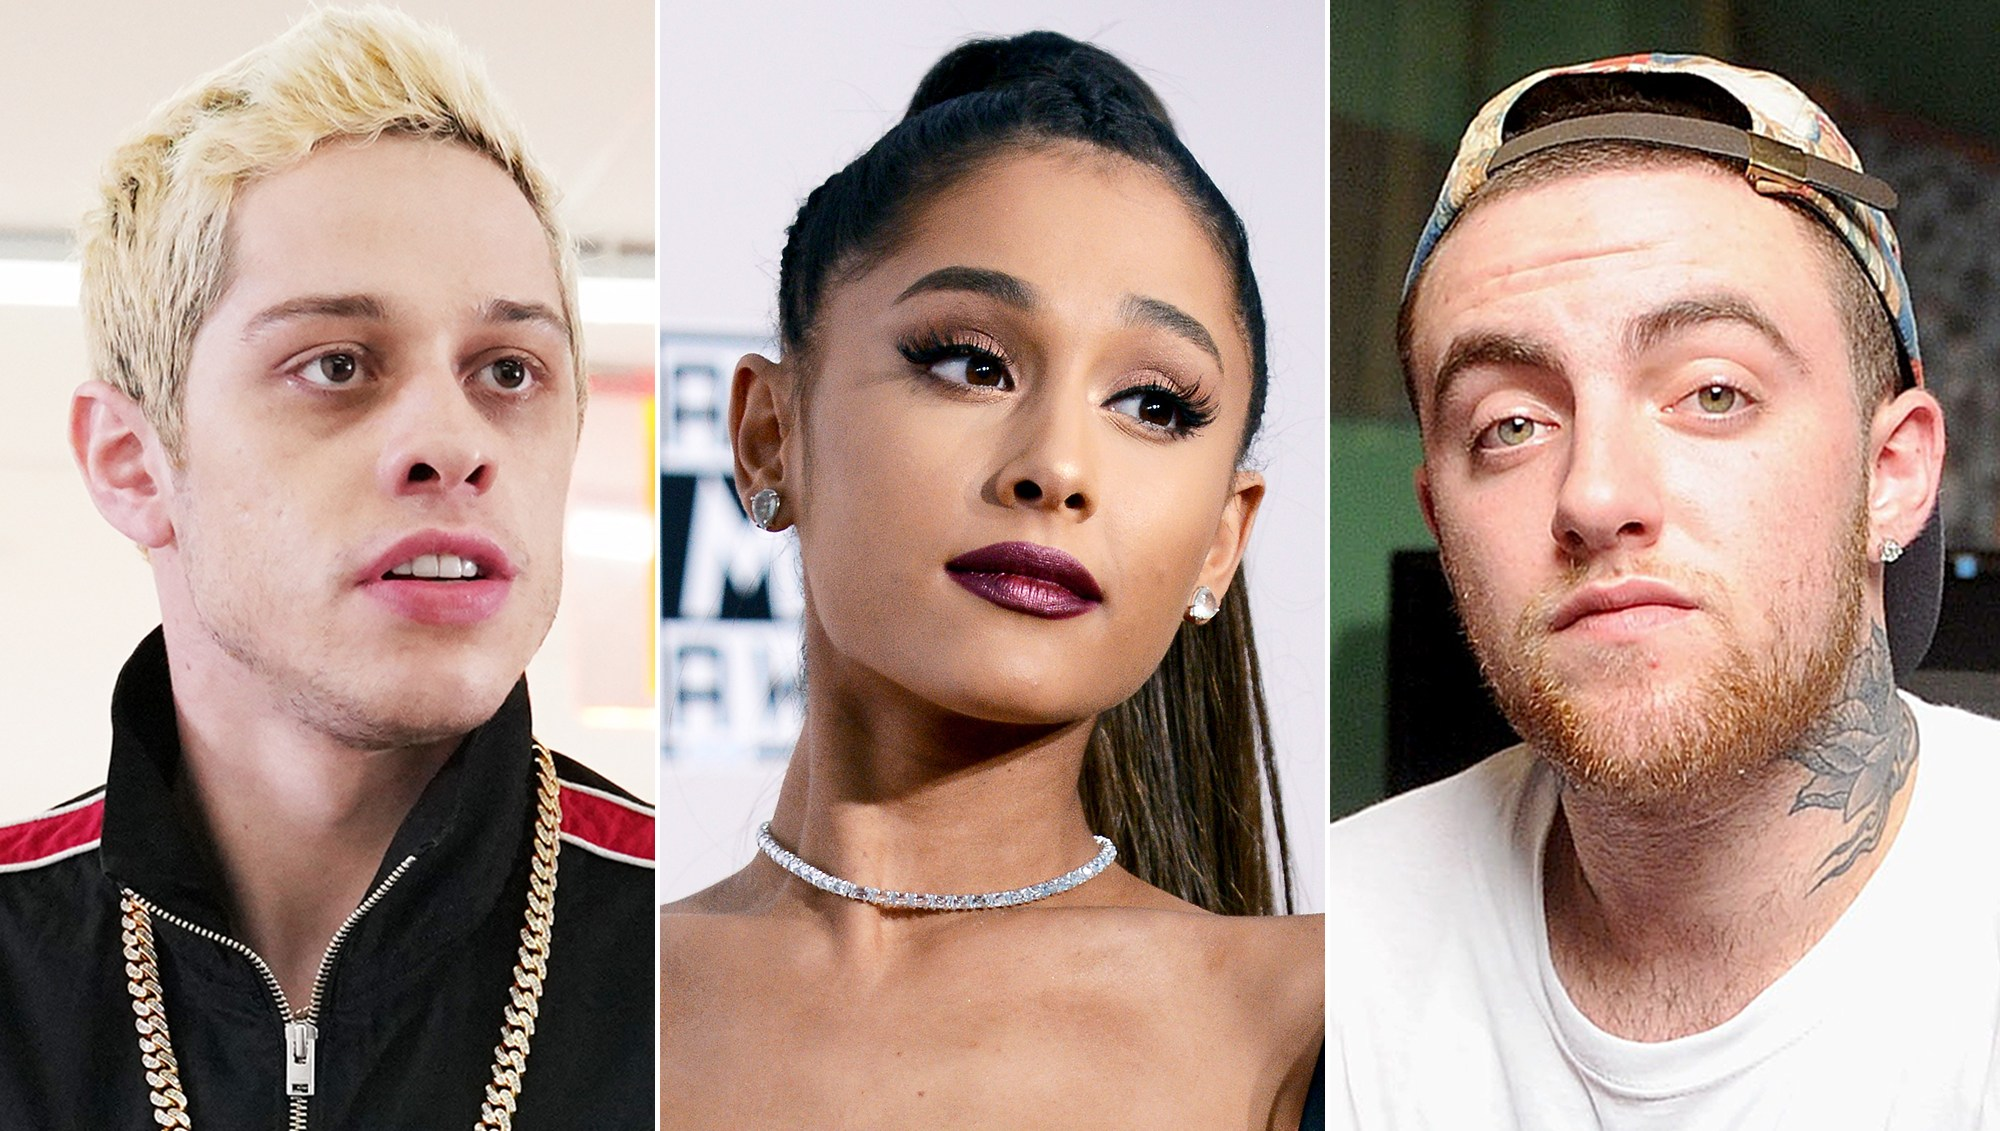 Pete Davidson 'Feels He's the One to Blame' for Ariana Grande Split